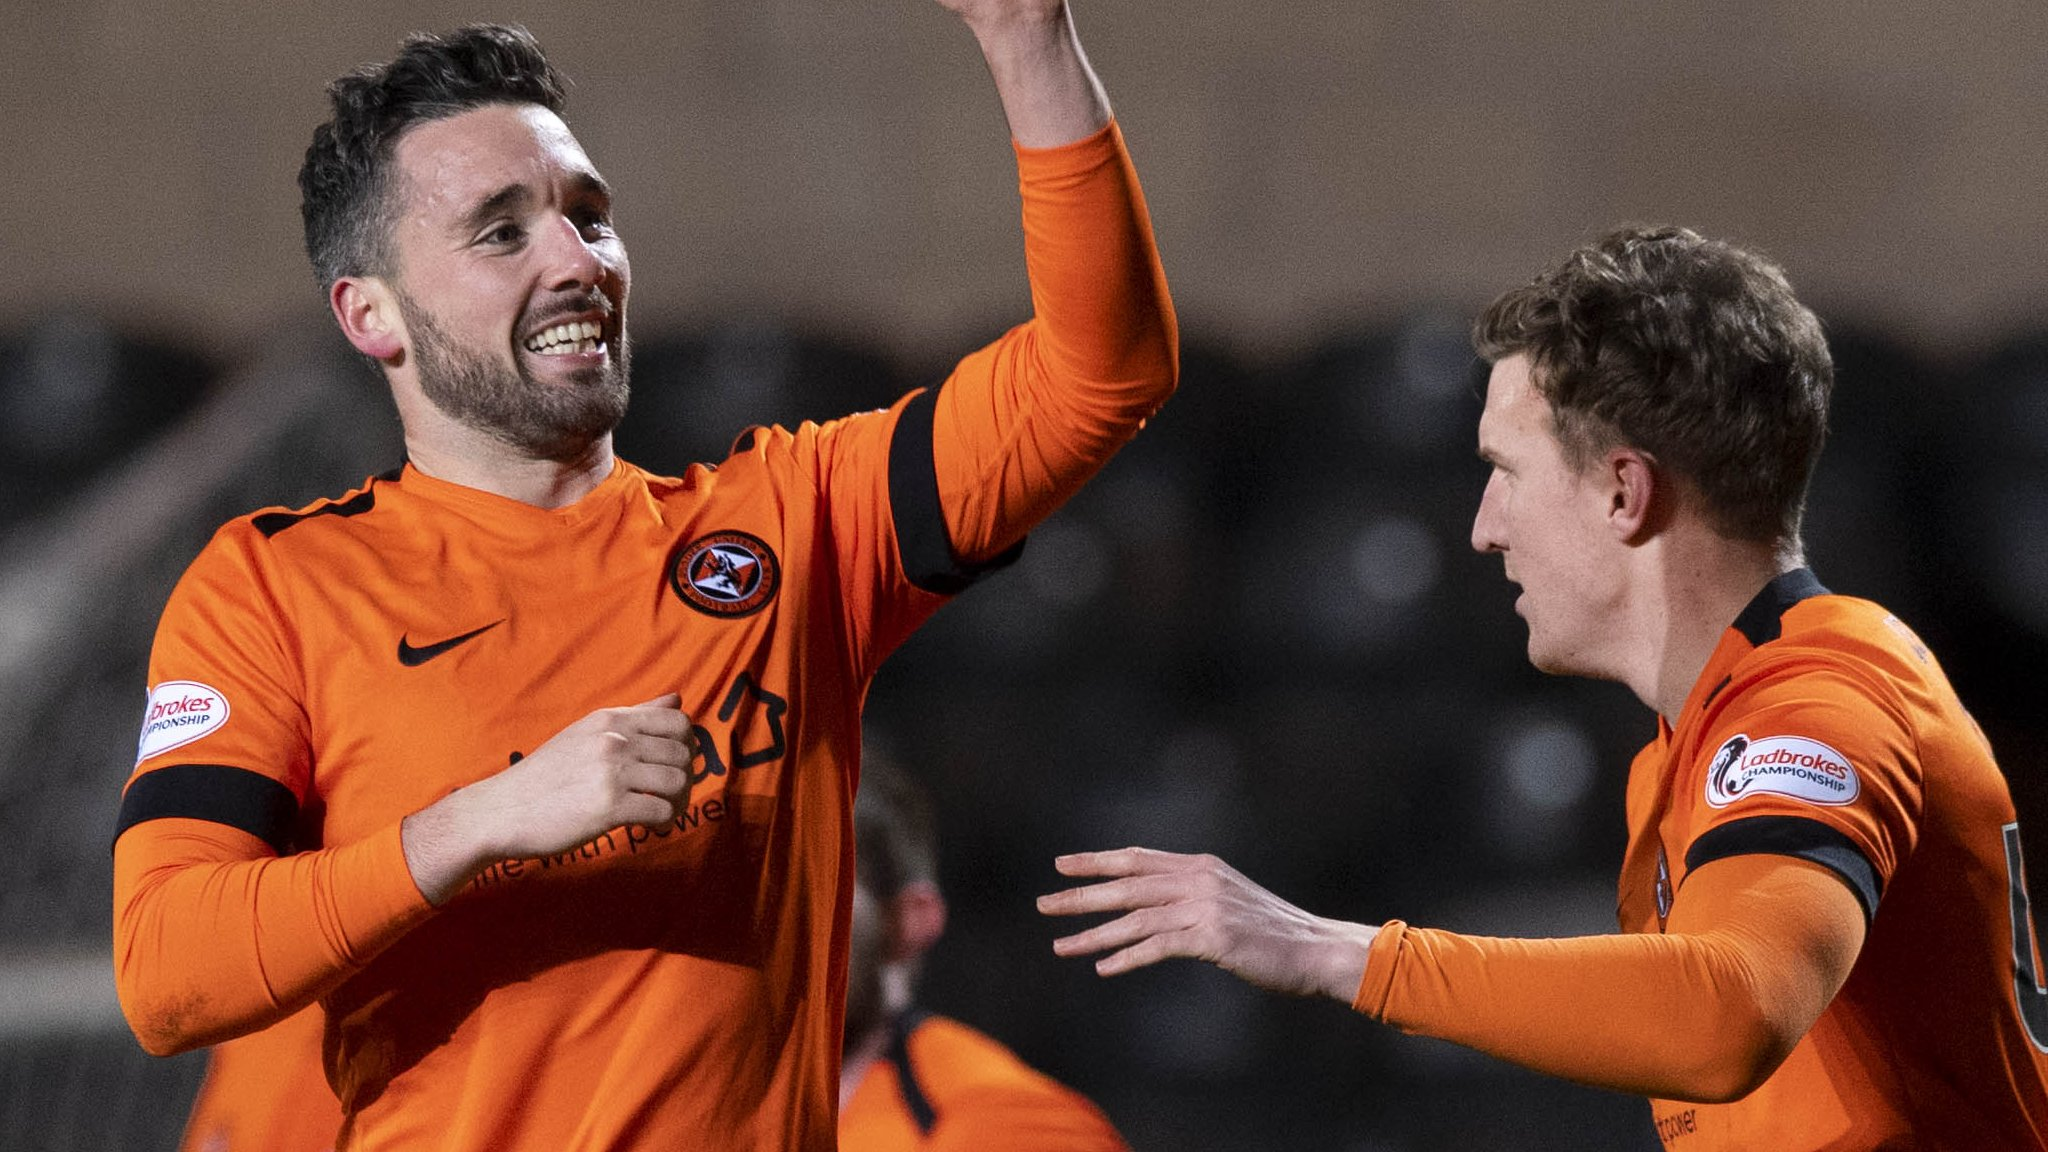 Dundee Utd within three points of summit after late Clark goal